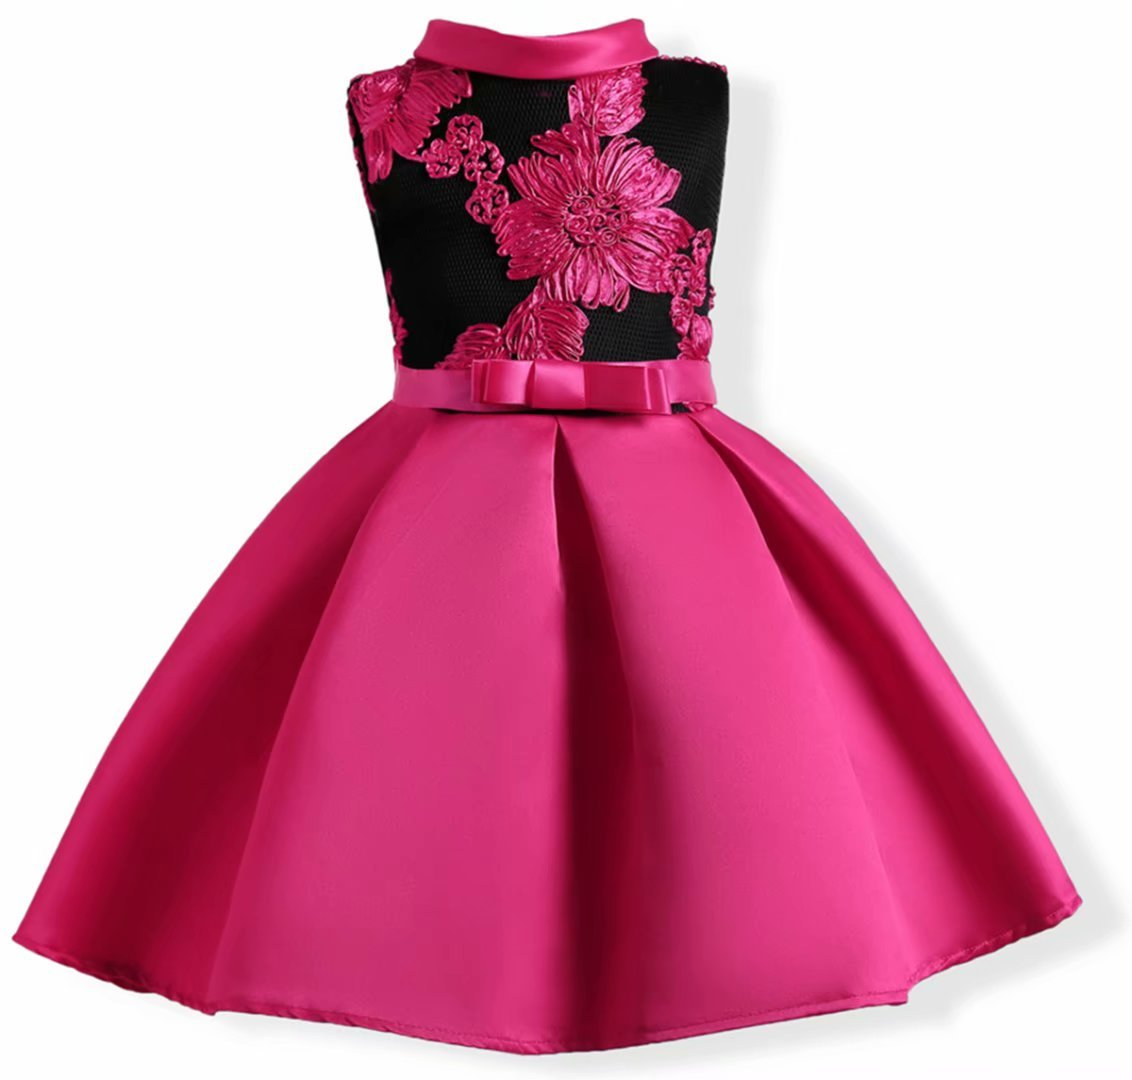 AYOMIS Flower Girl Pageant Dress Kids Party Embroidery Wedding Dresses 2-9 Years(Hot Pink,3-4Y)